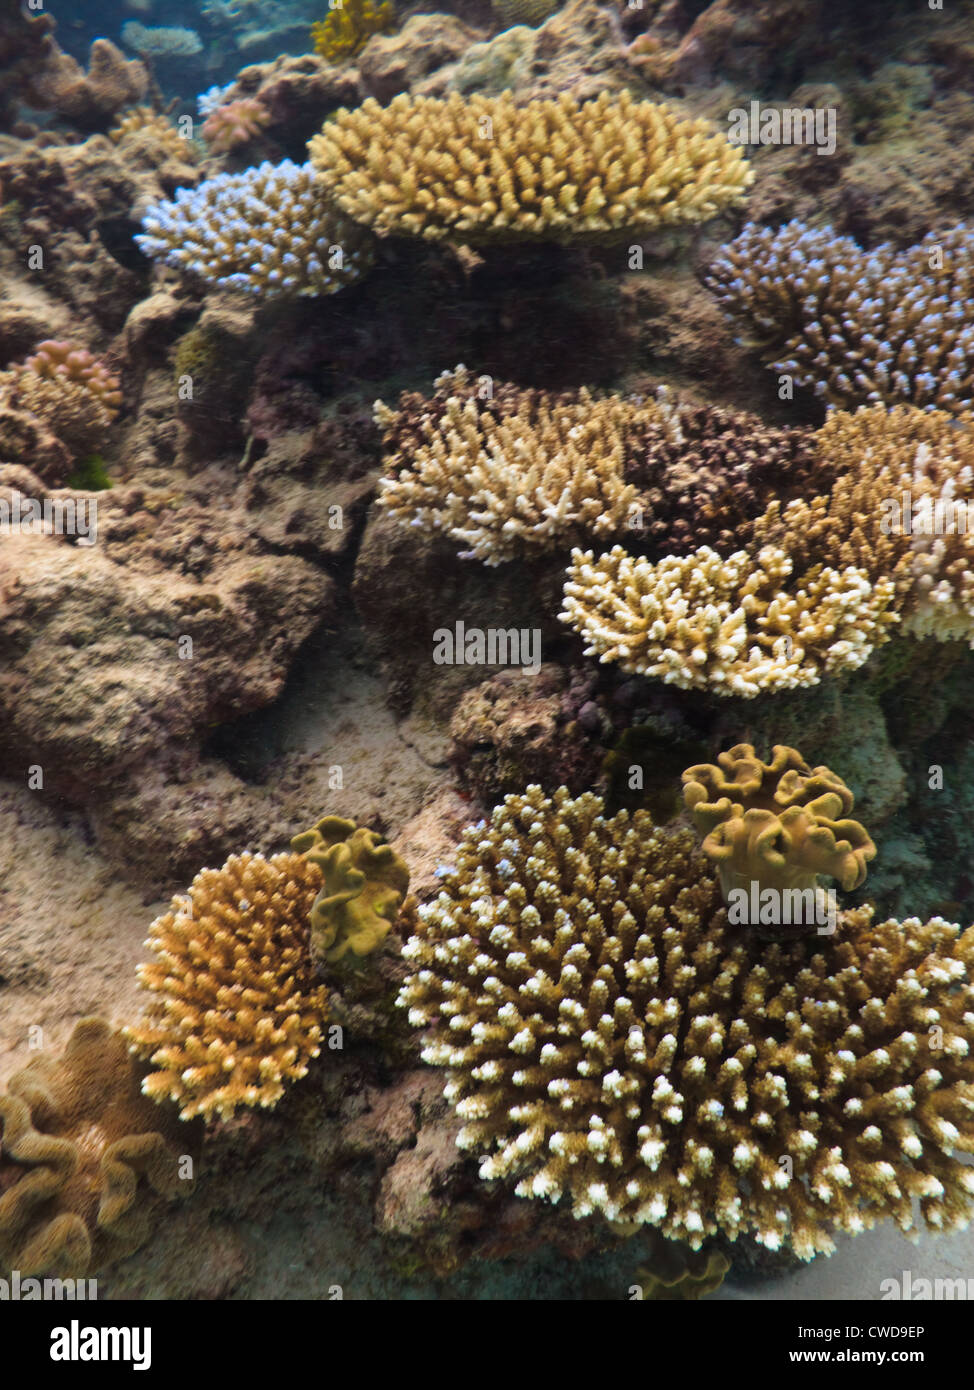 Varieties of hard stony coral, acropora cervicornis, colony building reef on Great Barrier Reef Australia - Stock Image